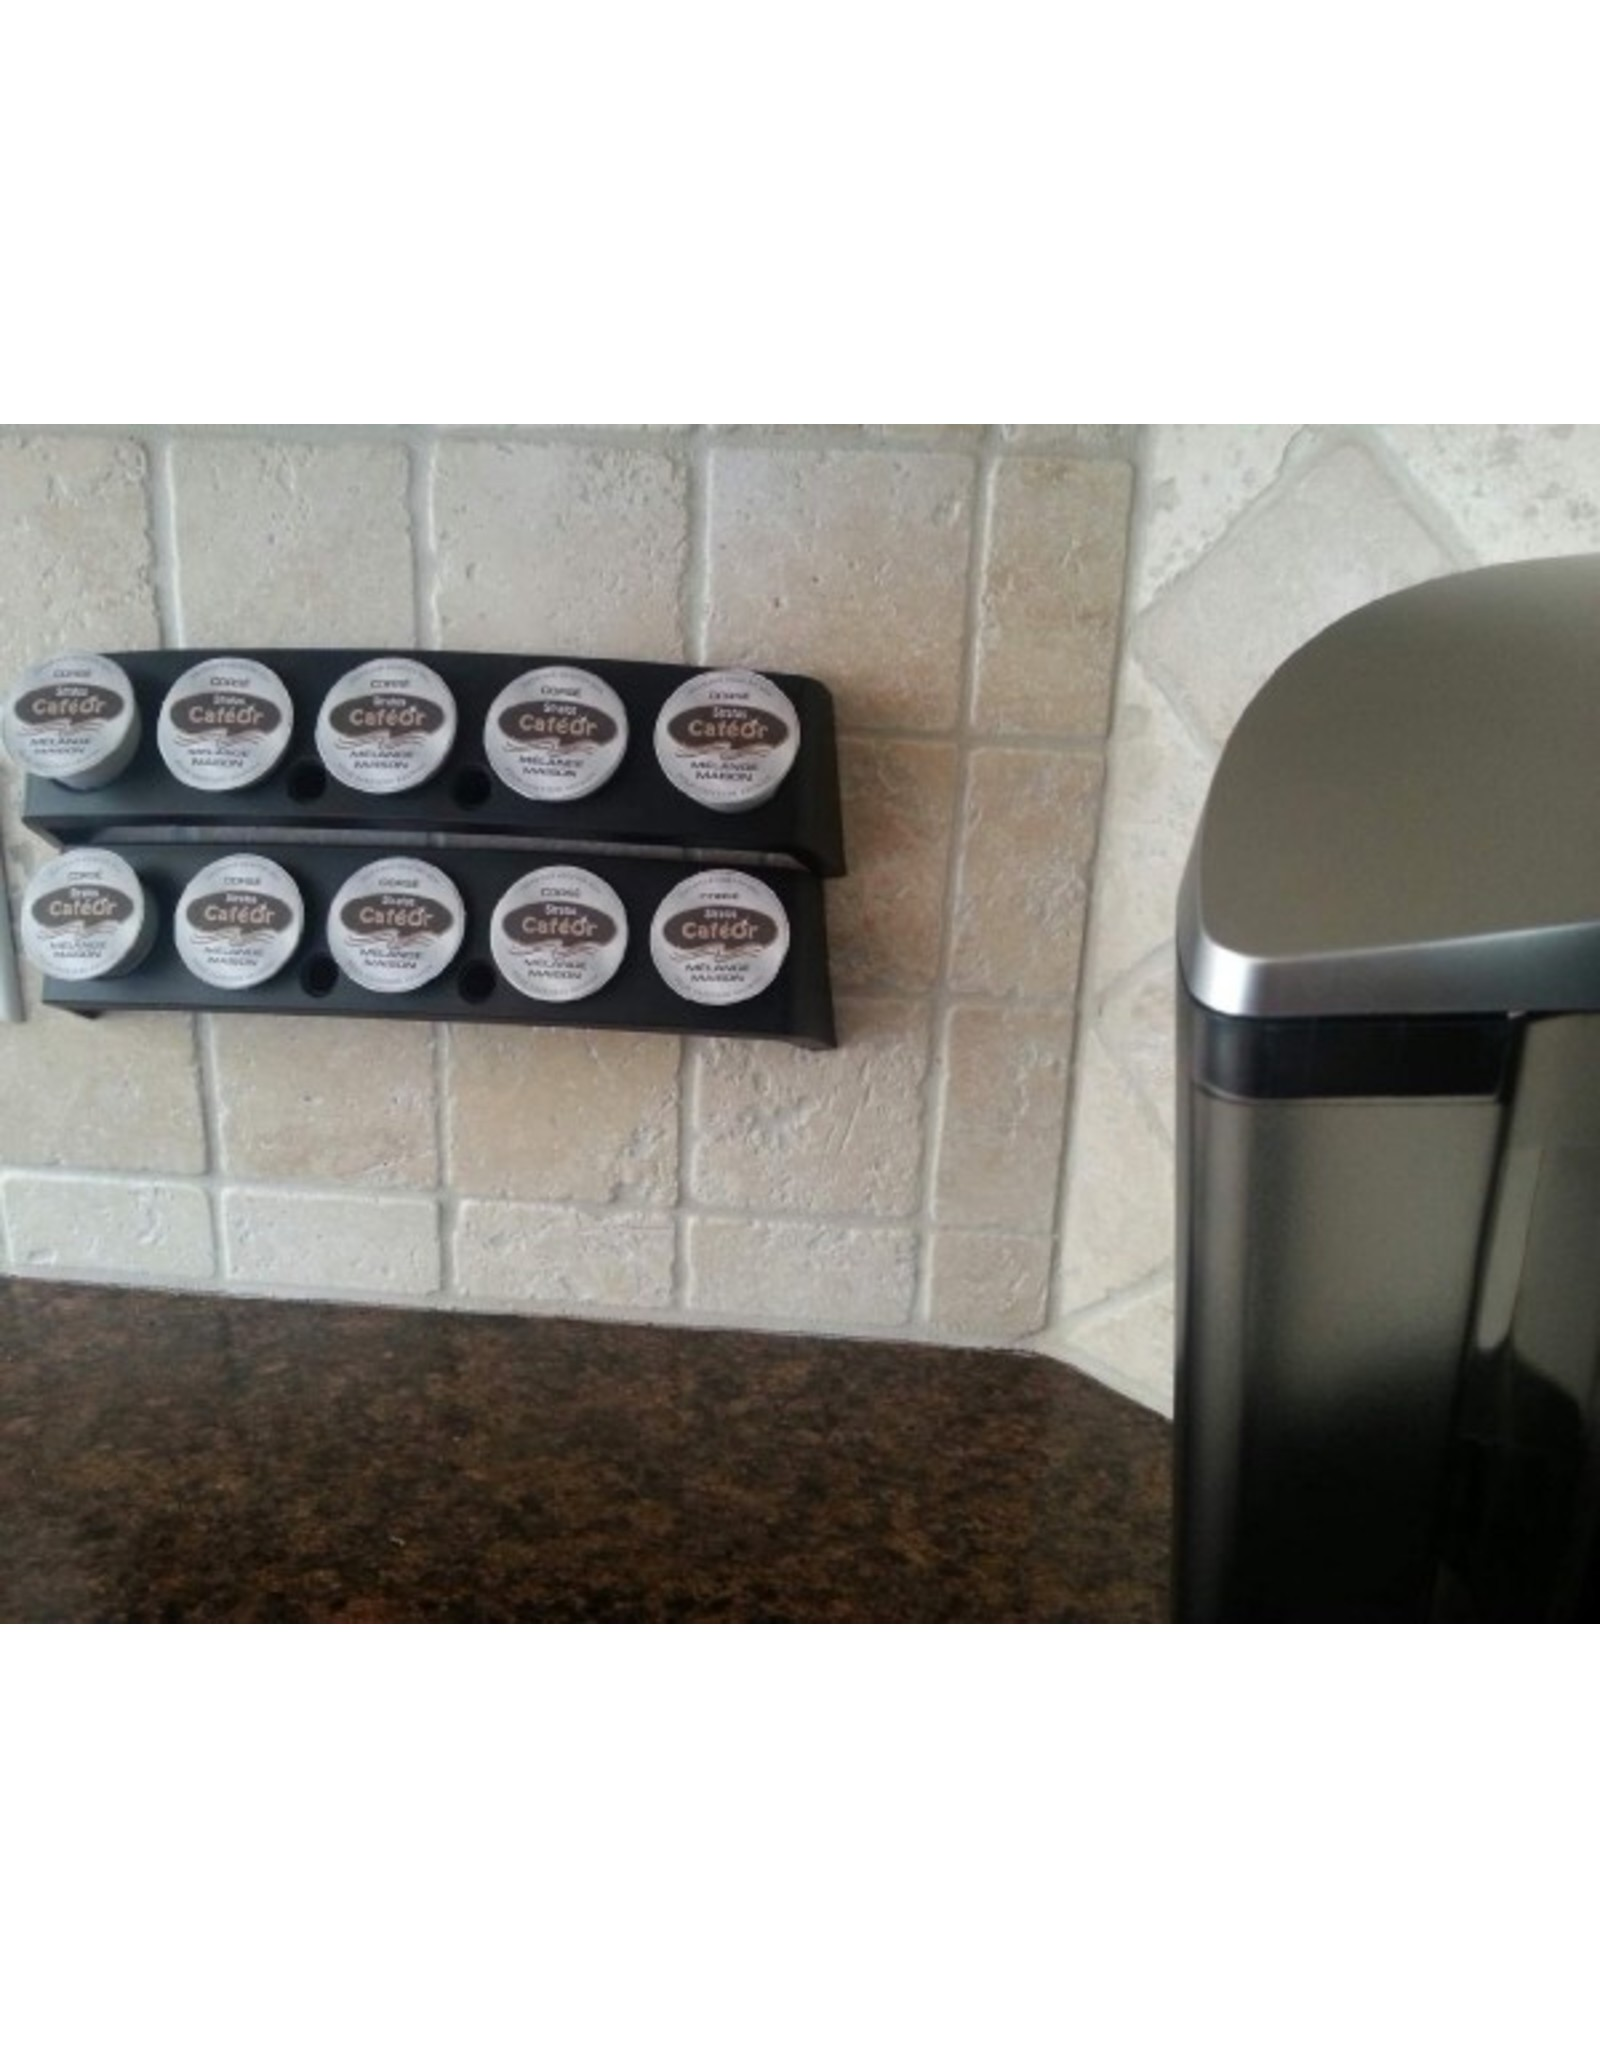 RACK FOR POD FILTERS (K-cup compatible)